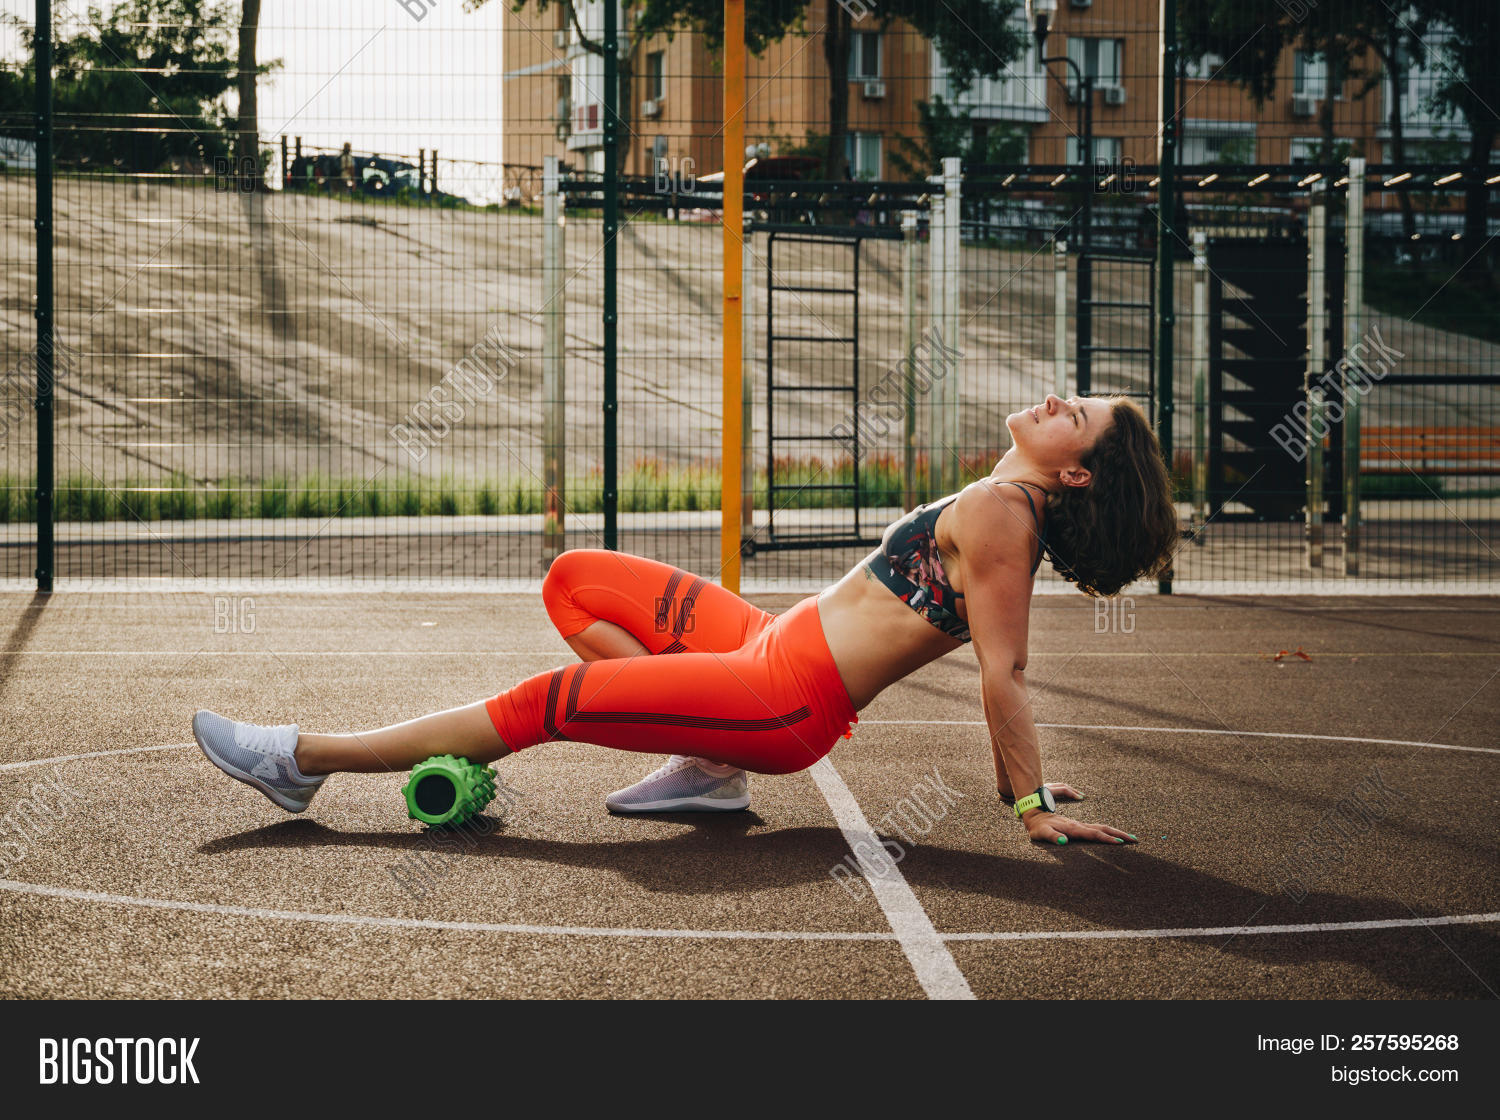 theme sport and rehabilitation sports medicine. Beautiful strong slender Caucasian woman athlete uses foam roller green field street workout to workout to remove pain, stretch and massage muscles